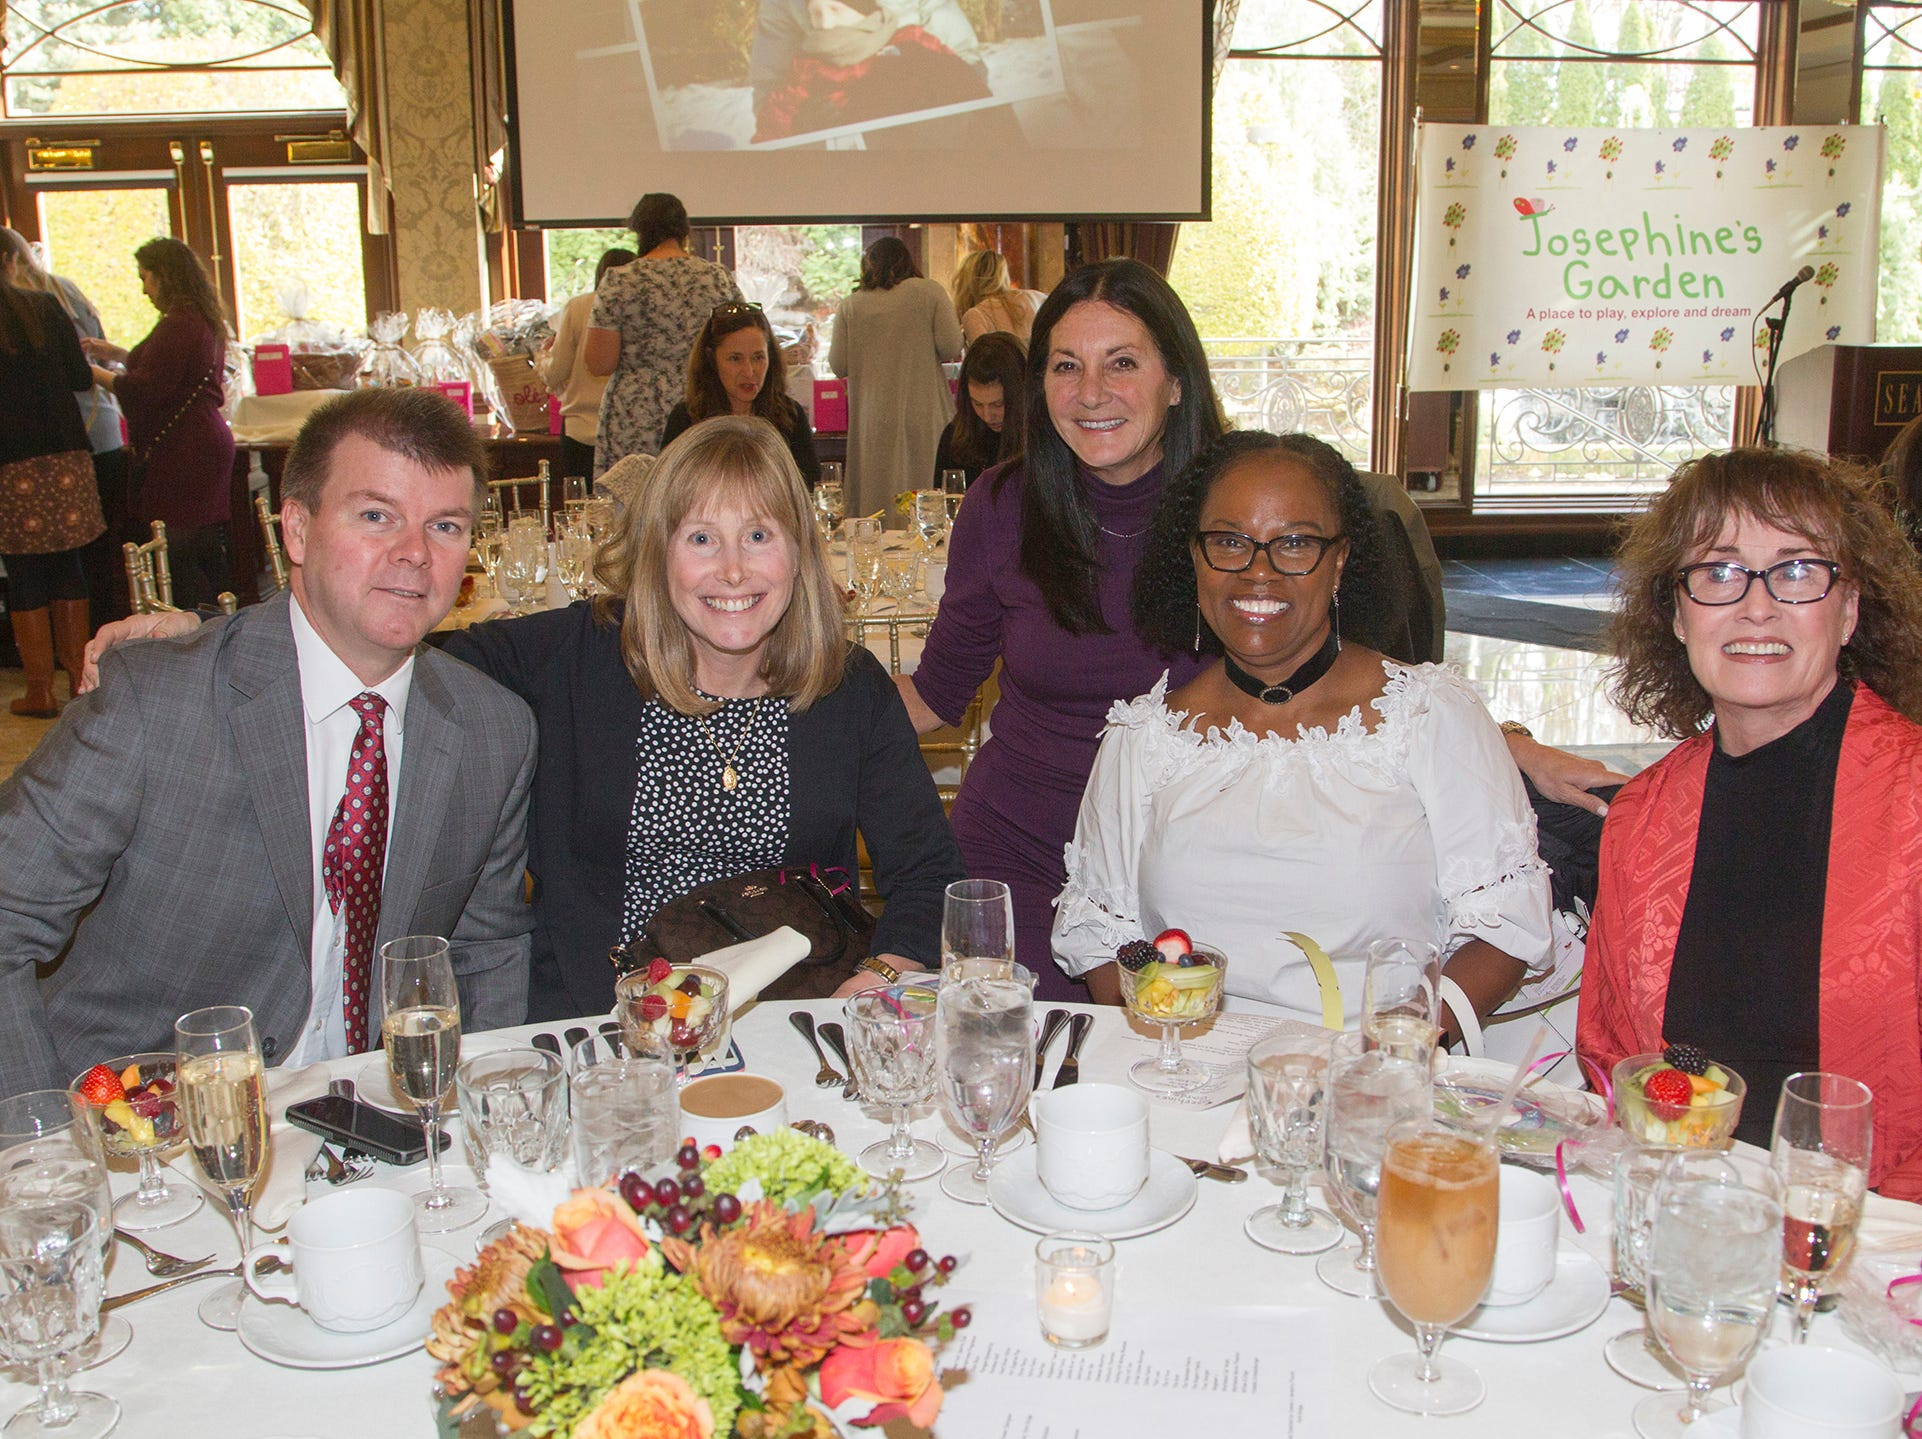 Dan Foley, Mary Foley, Sue Gerson, Ceslyn Beckford,  Pam Donovan. Josephine's Garden, part of Hackensack Meridian Health, held its luncheon gala at Season's in Washington Township. The mission of this organization is to provide a place of respite, joy and hope to children battling cancer. 11/14/2018